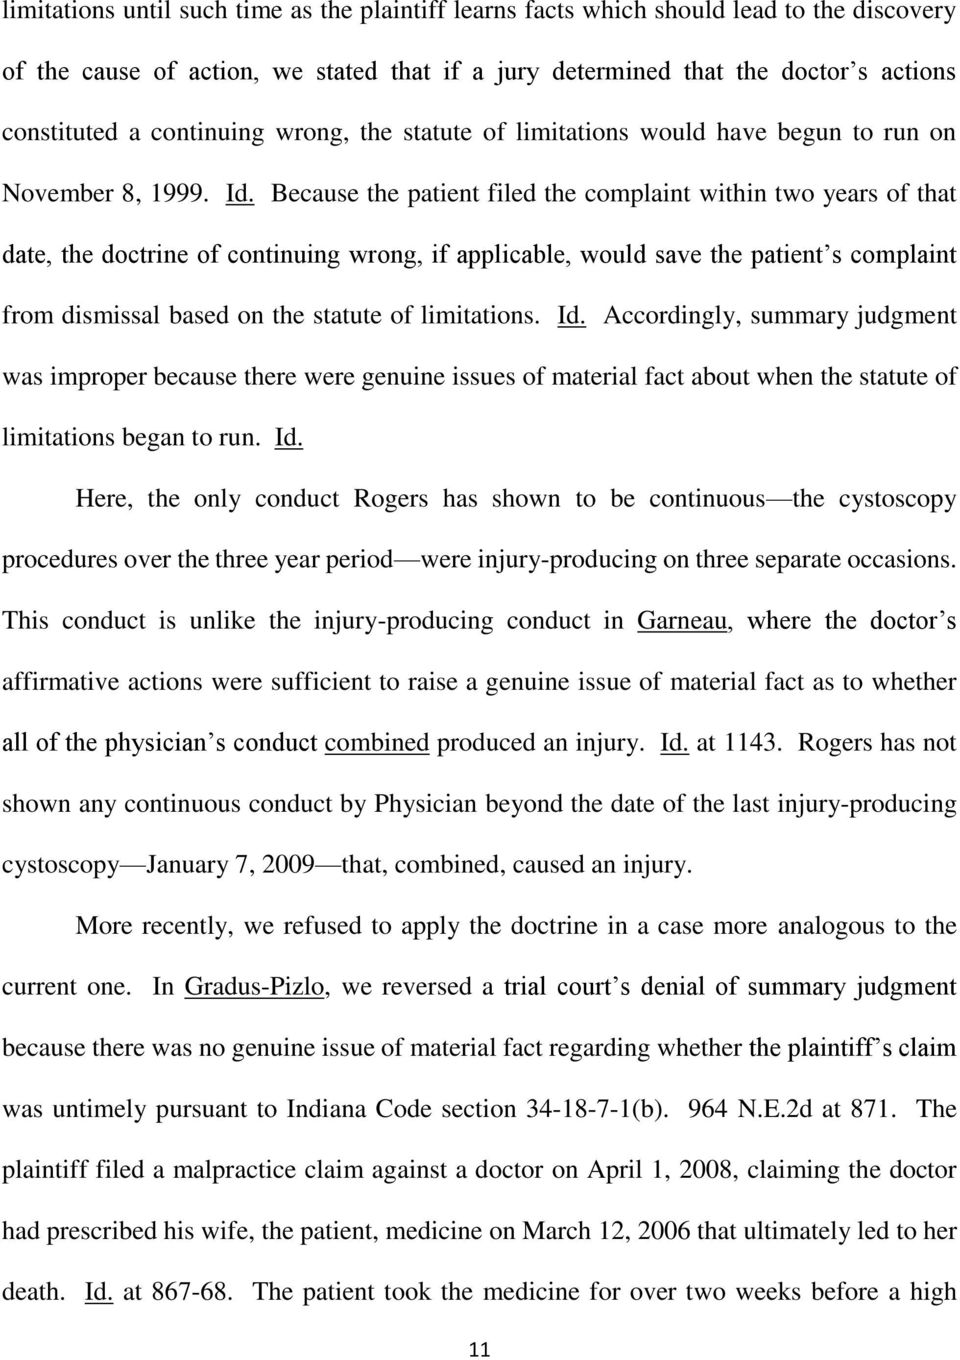 Because the patient filed the complaint within two years of that date, the doctrine of continuing wrong, if applicable, would save the patient s complaint from dismissal based on the statute of